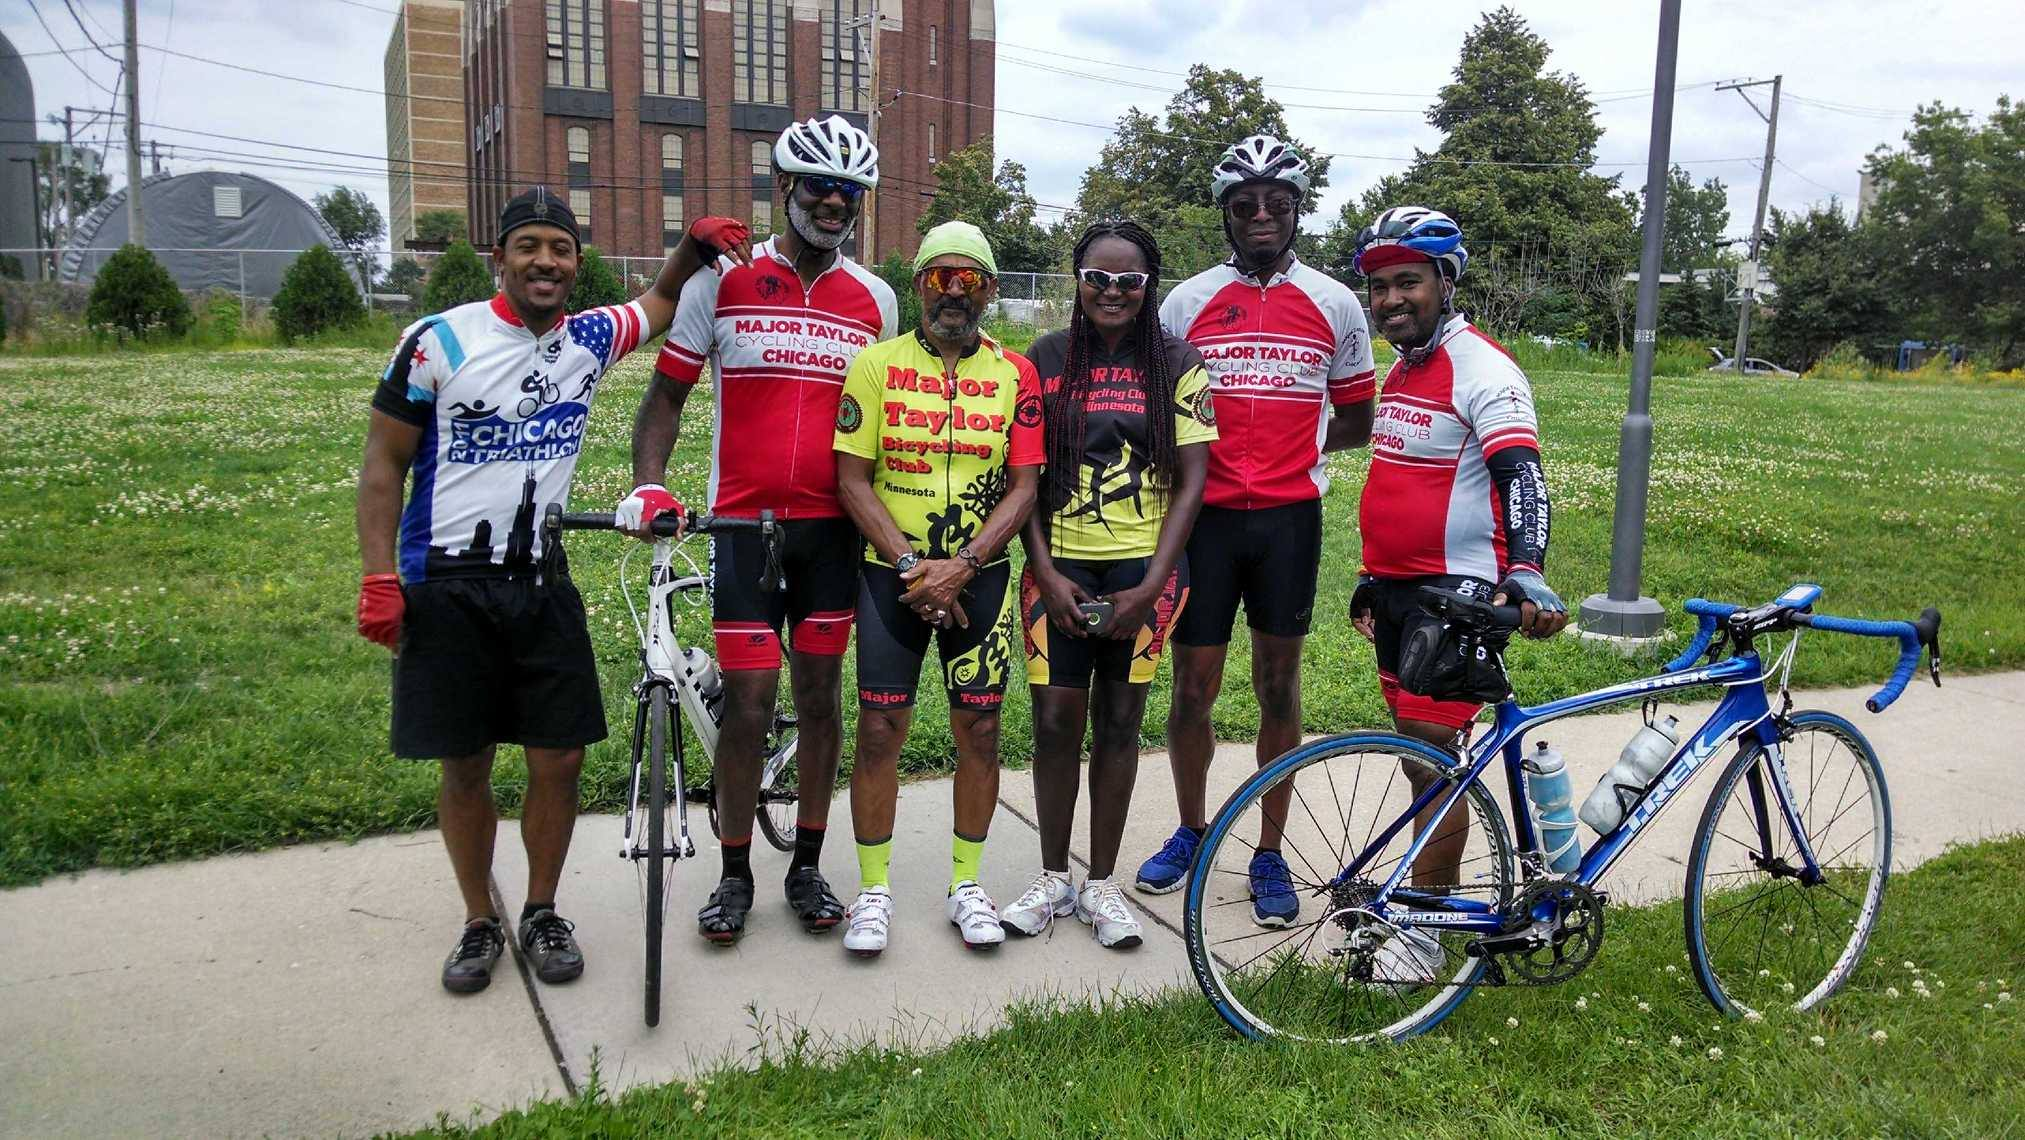 chicago victory ride 1.jpg